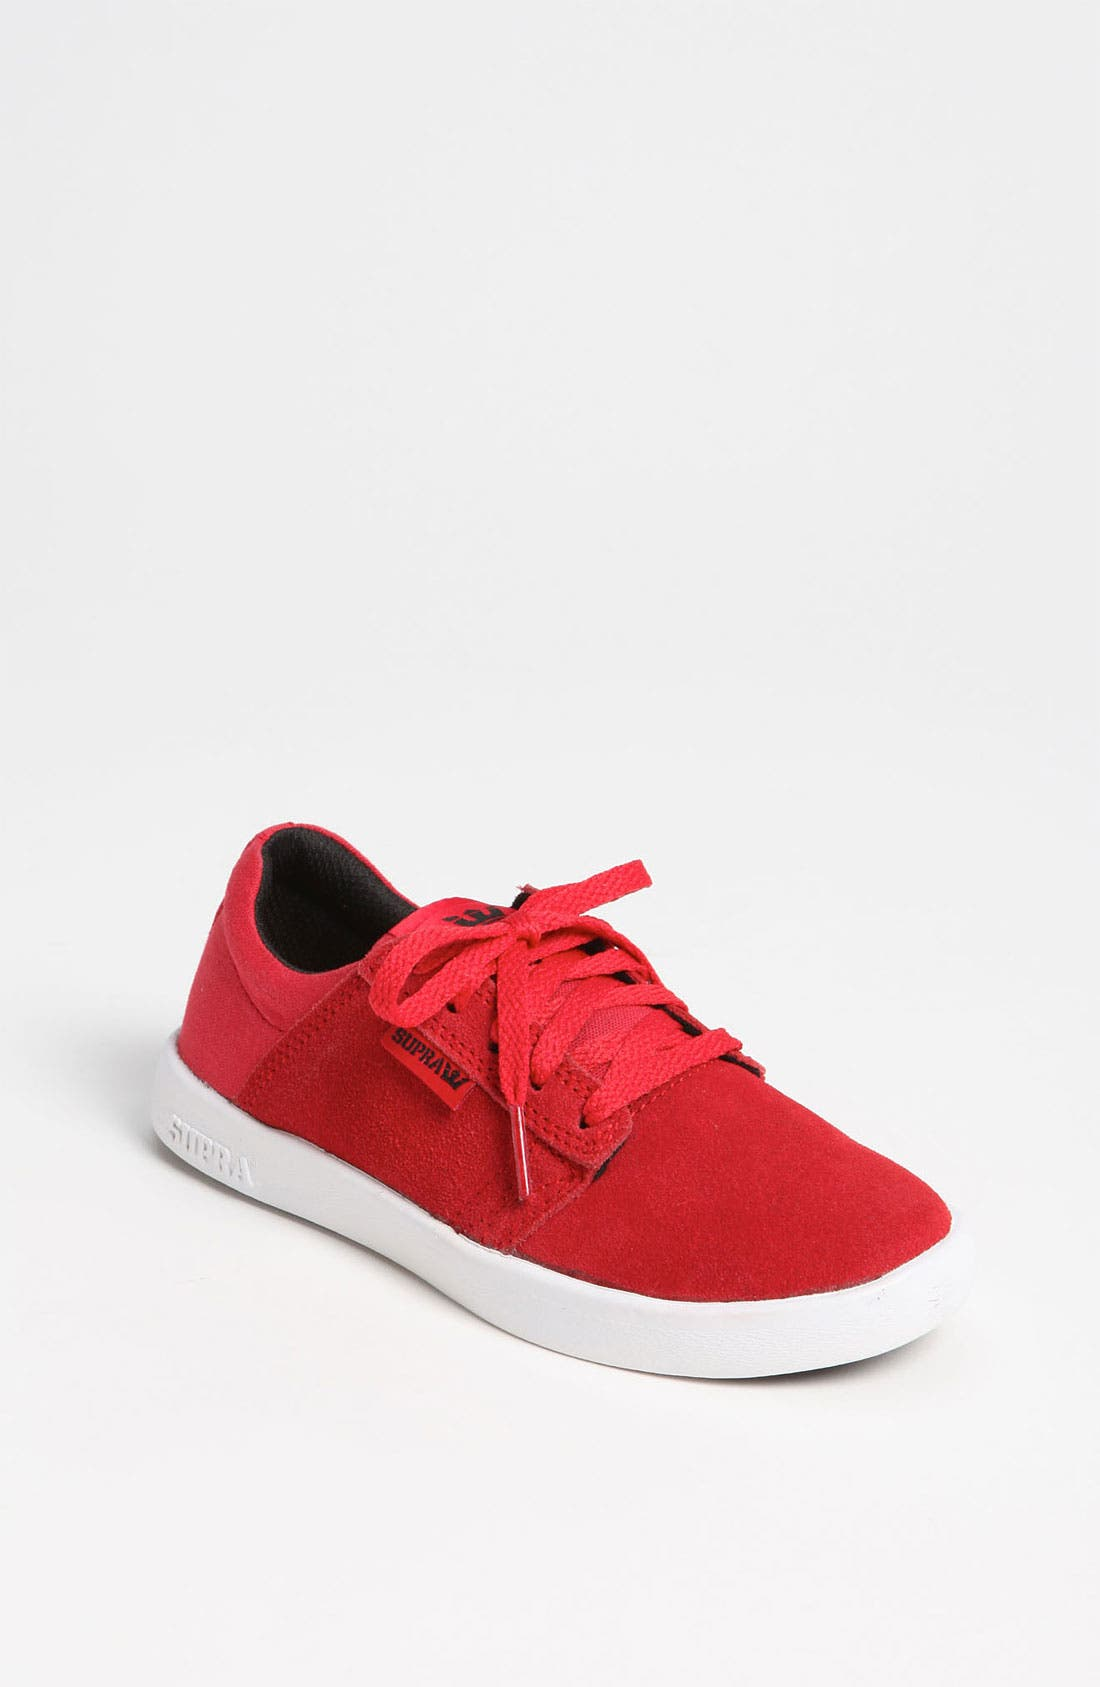 Main Image - Supra 'Westway' Sneaker (Toddler, Little Kid & Big Kid)